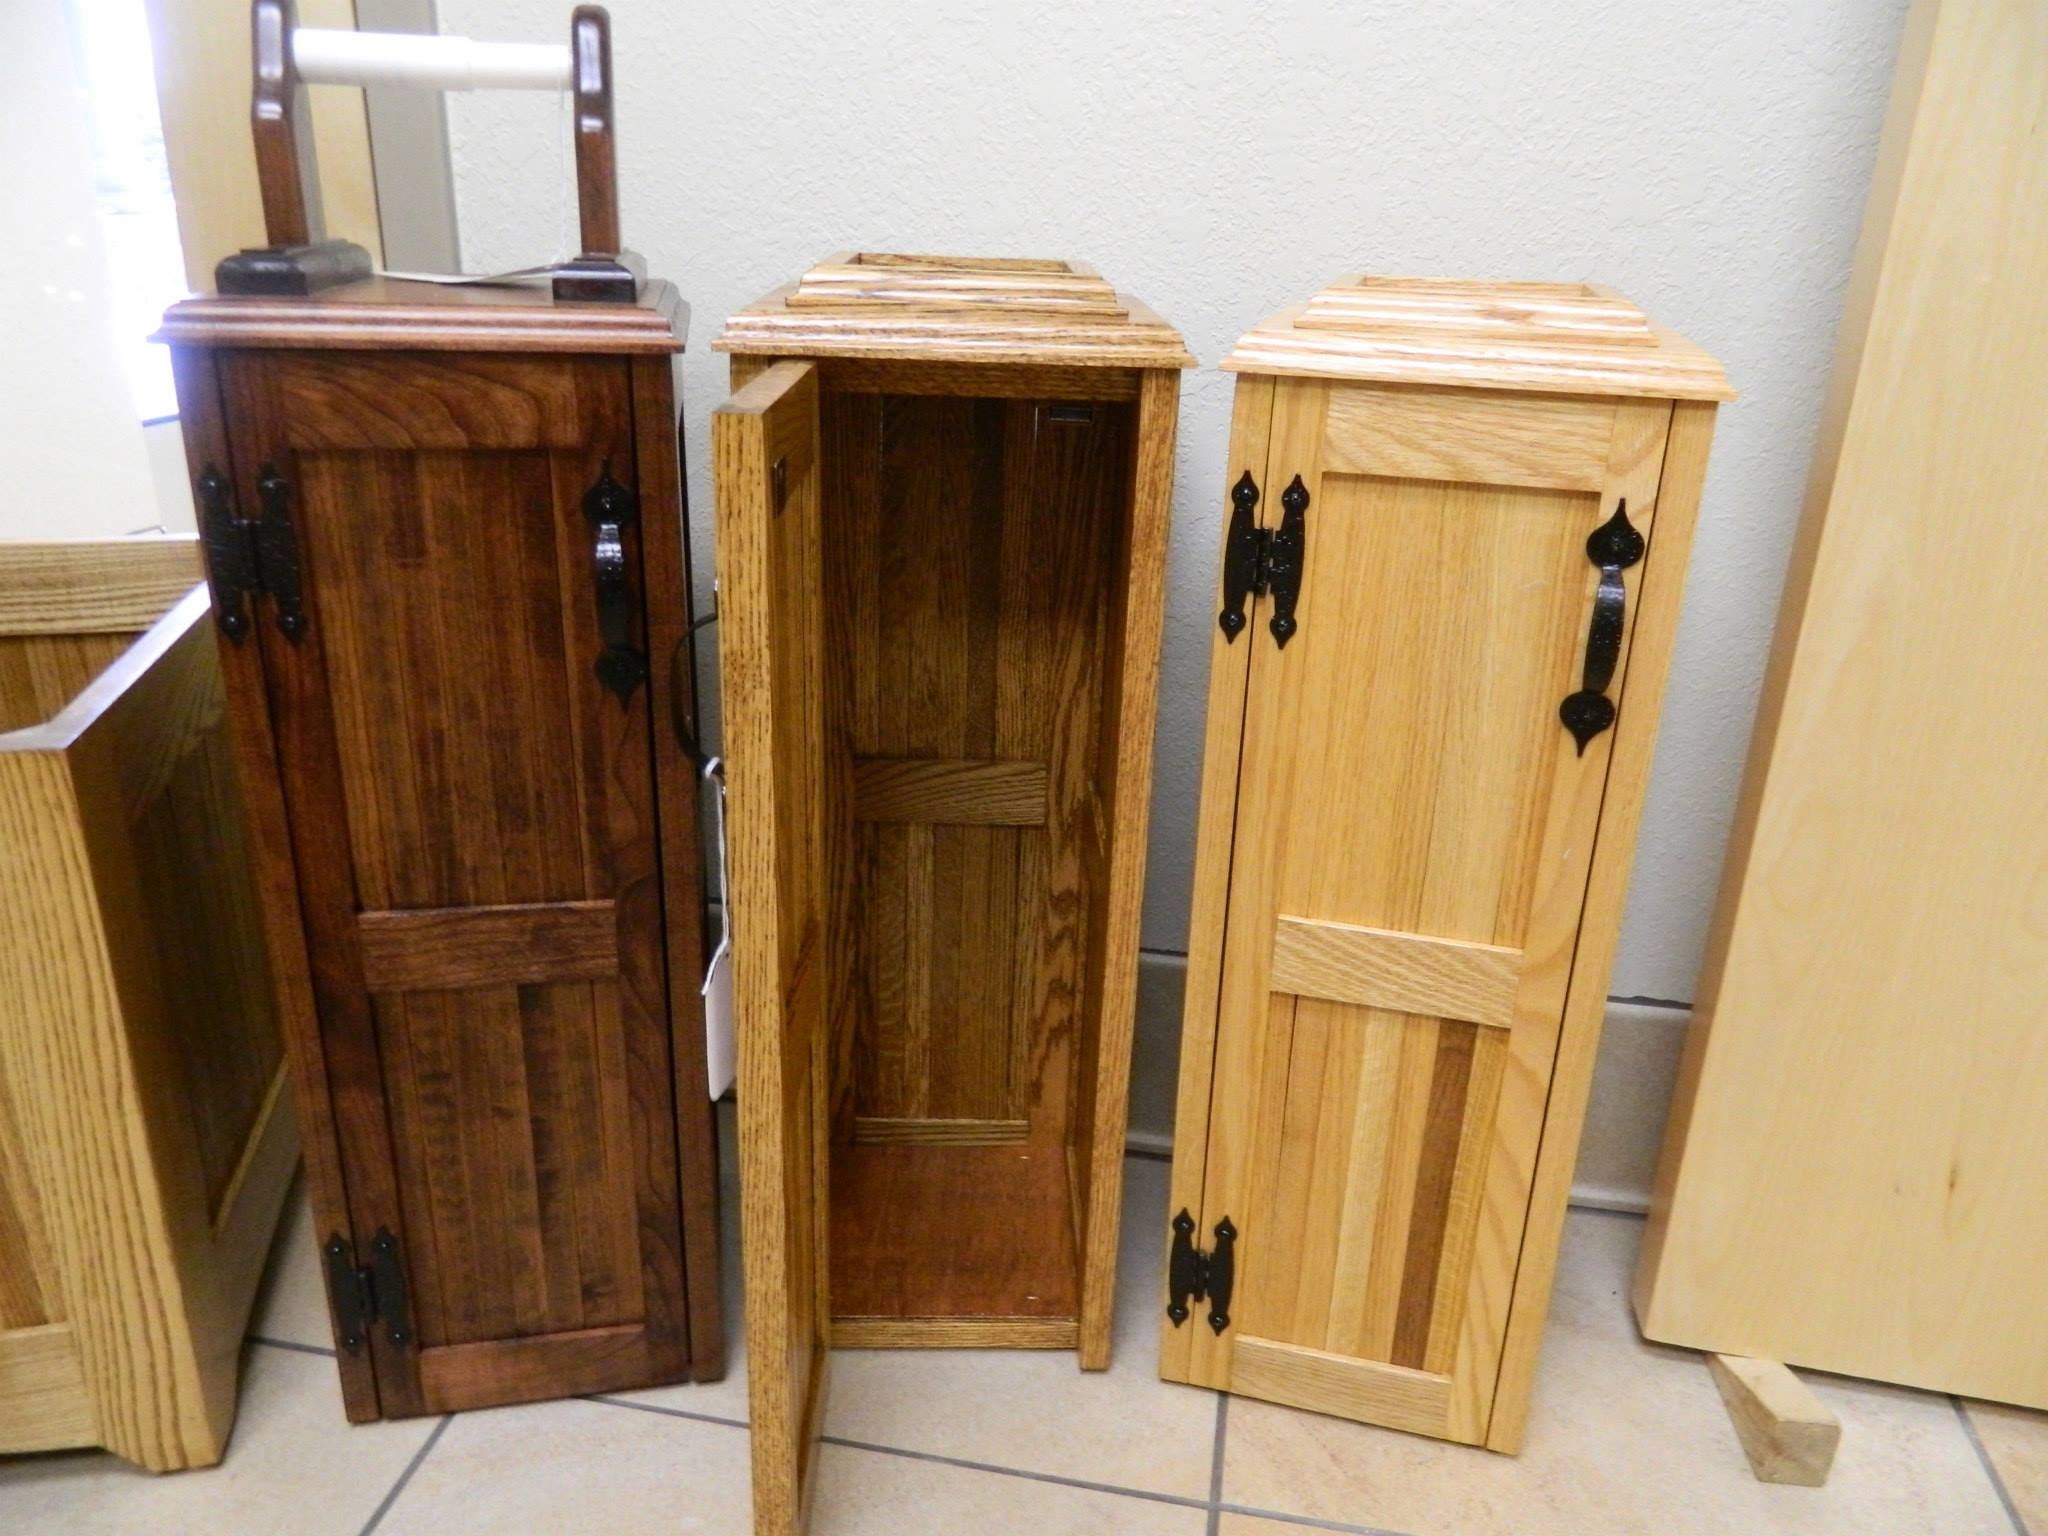 Toilet Paper Cabinets